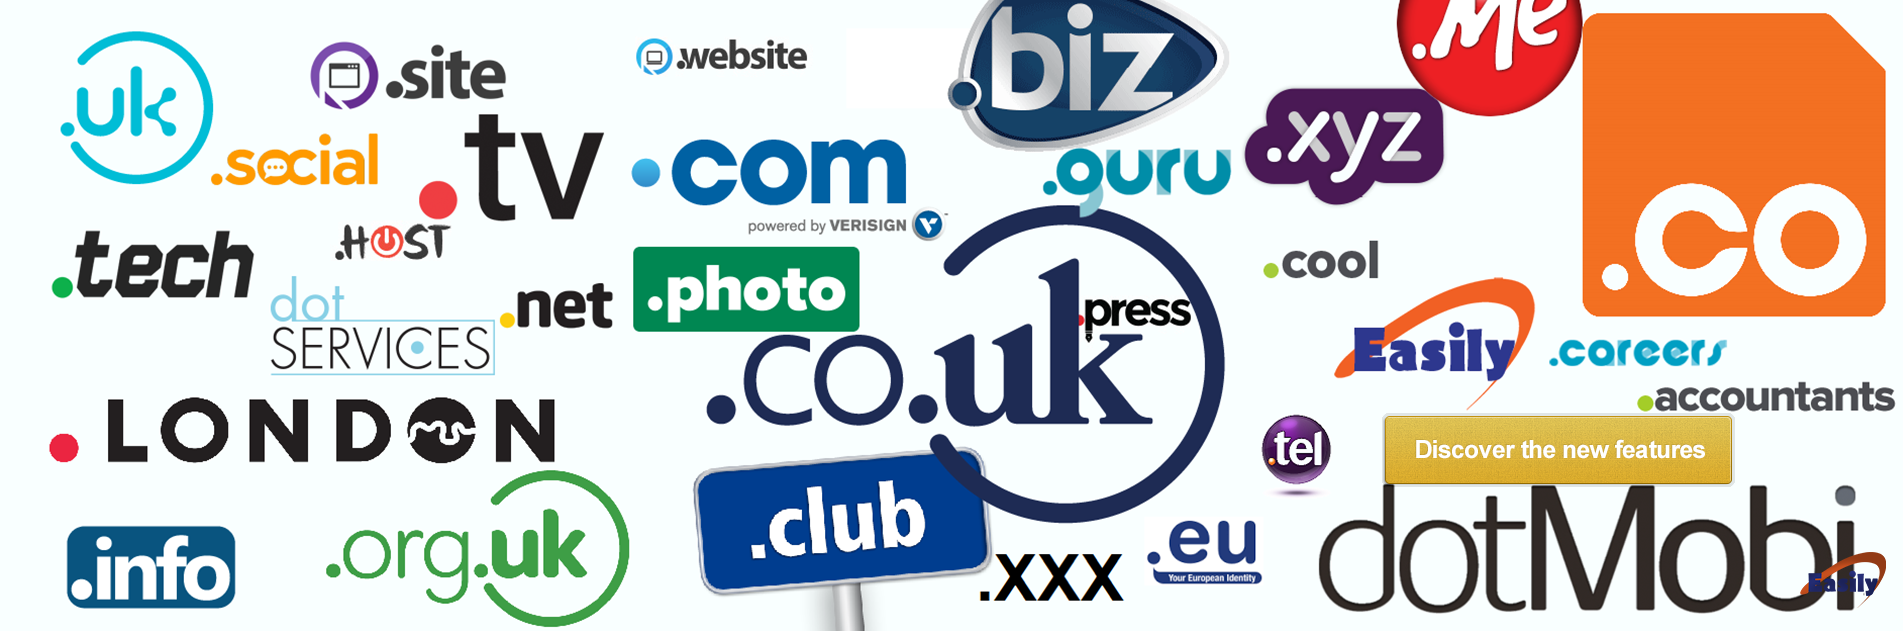 how to create and sell domain names